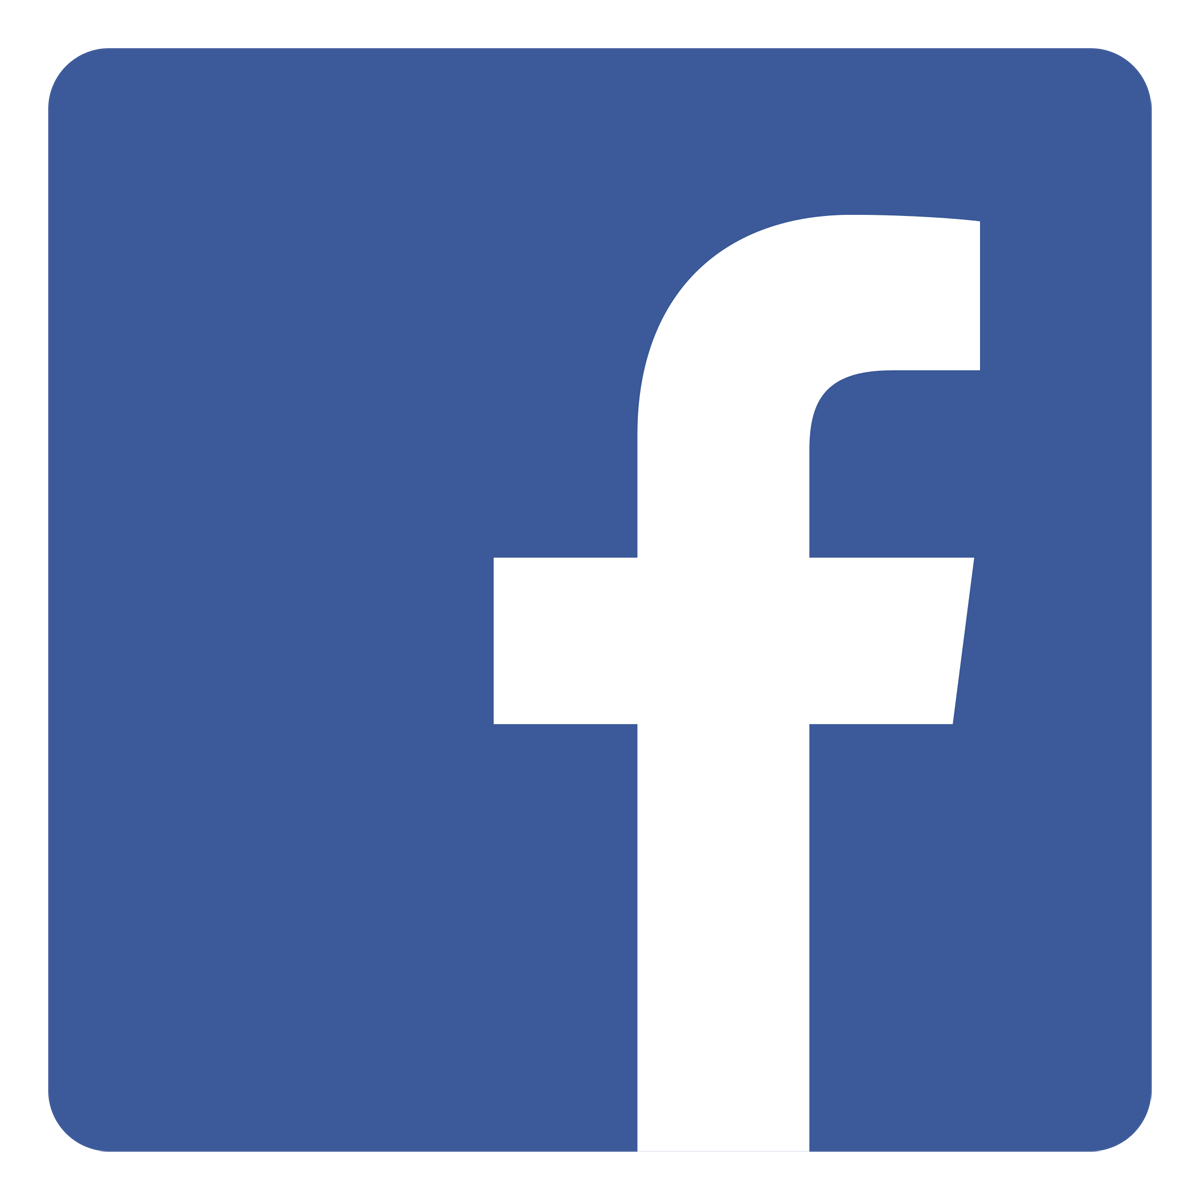 facebook logo | Branding, Marketing, Posting